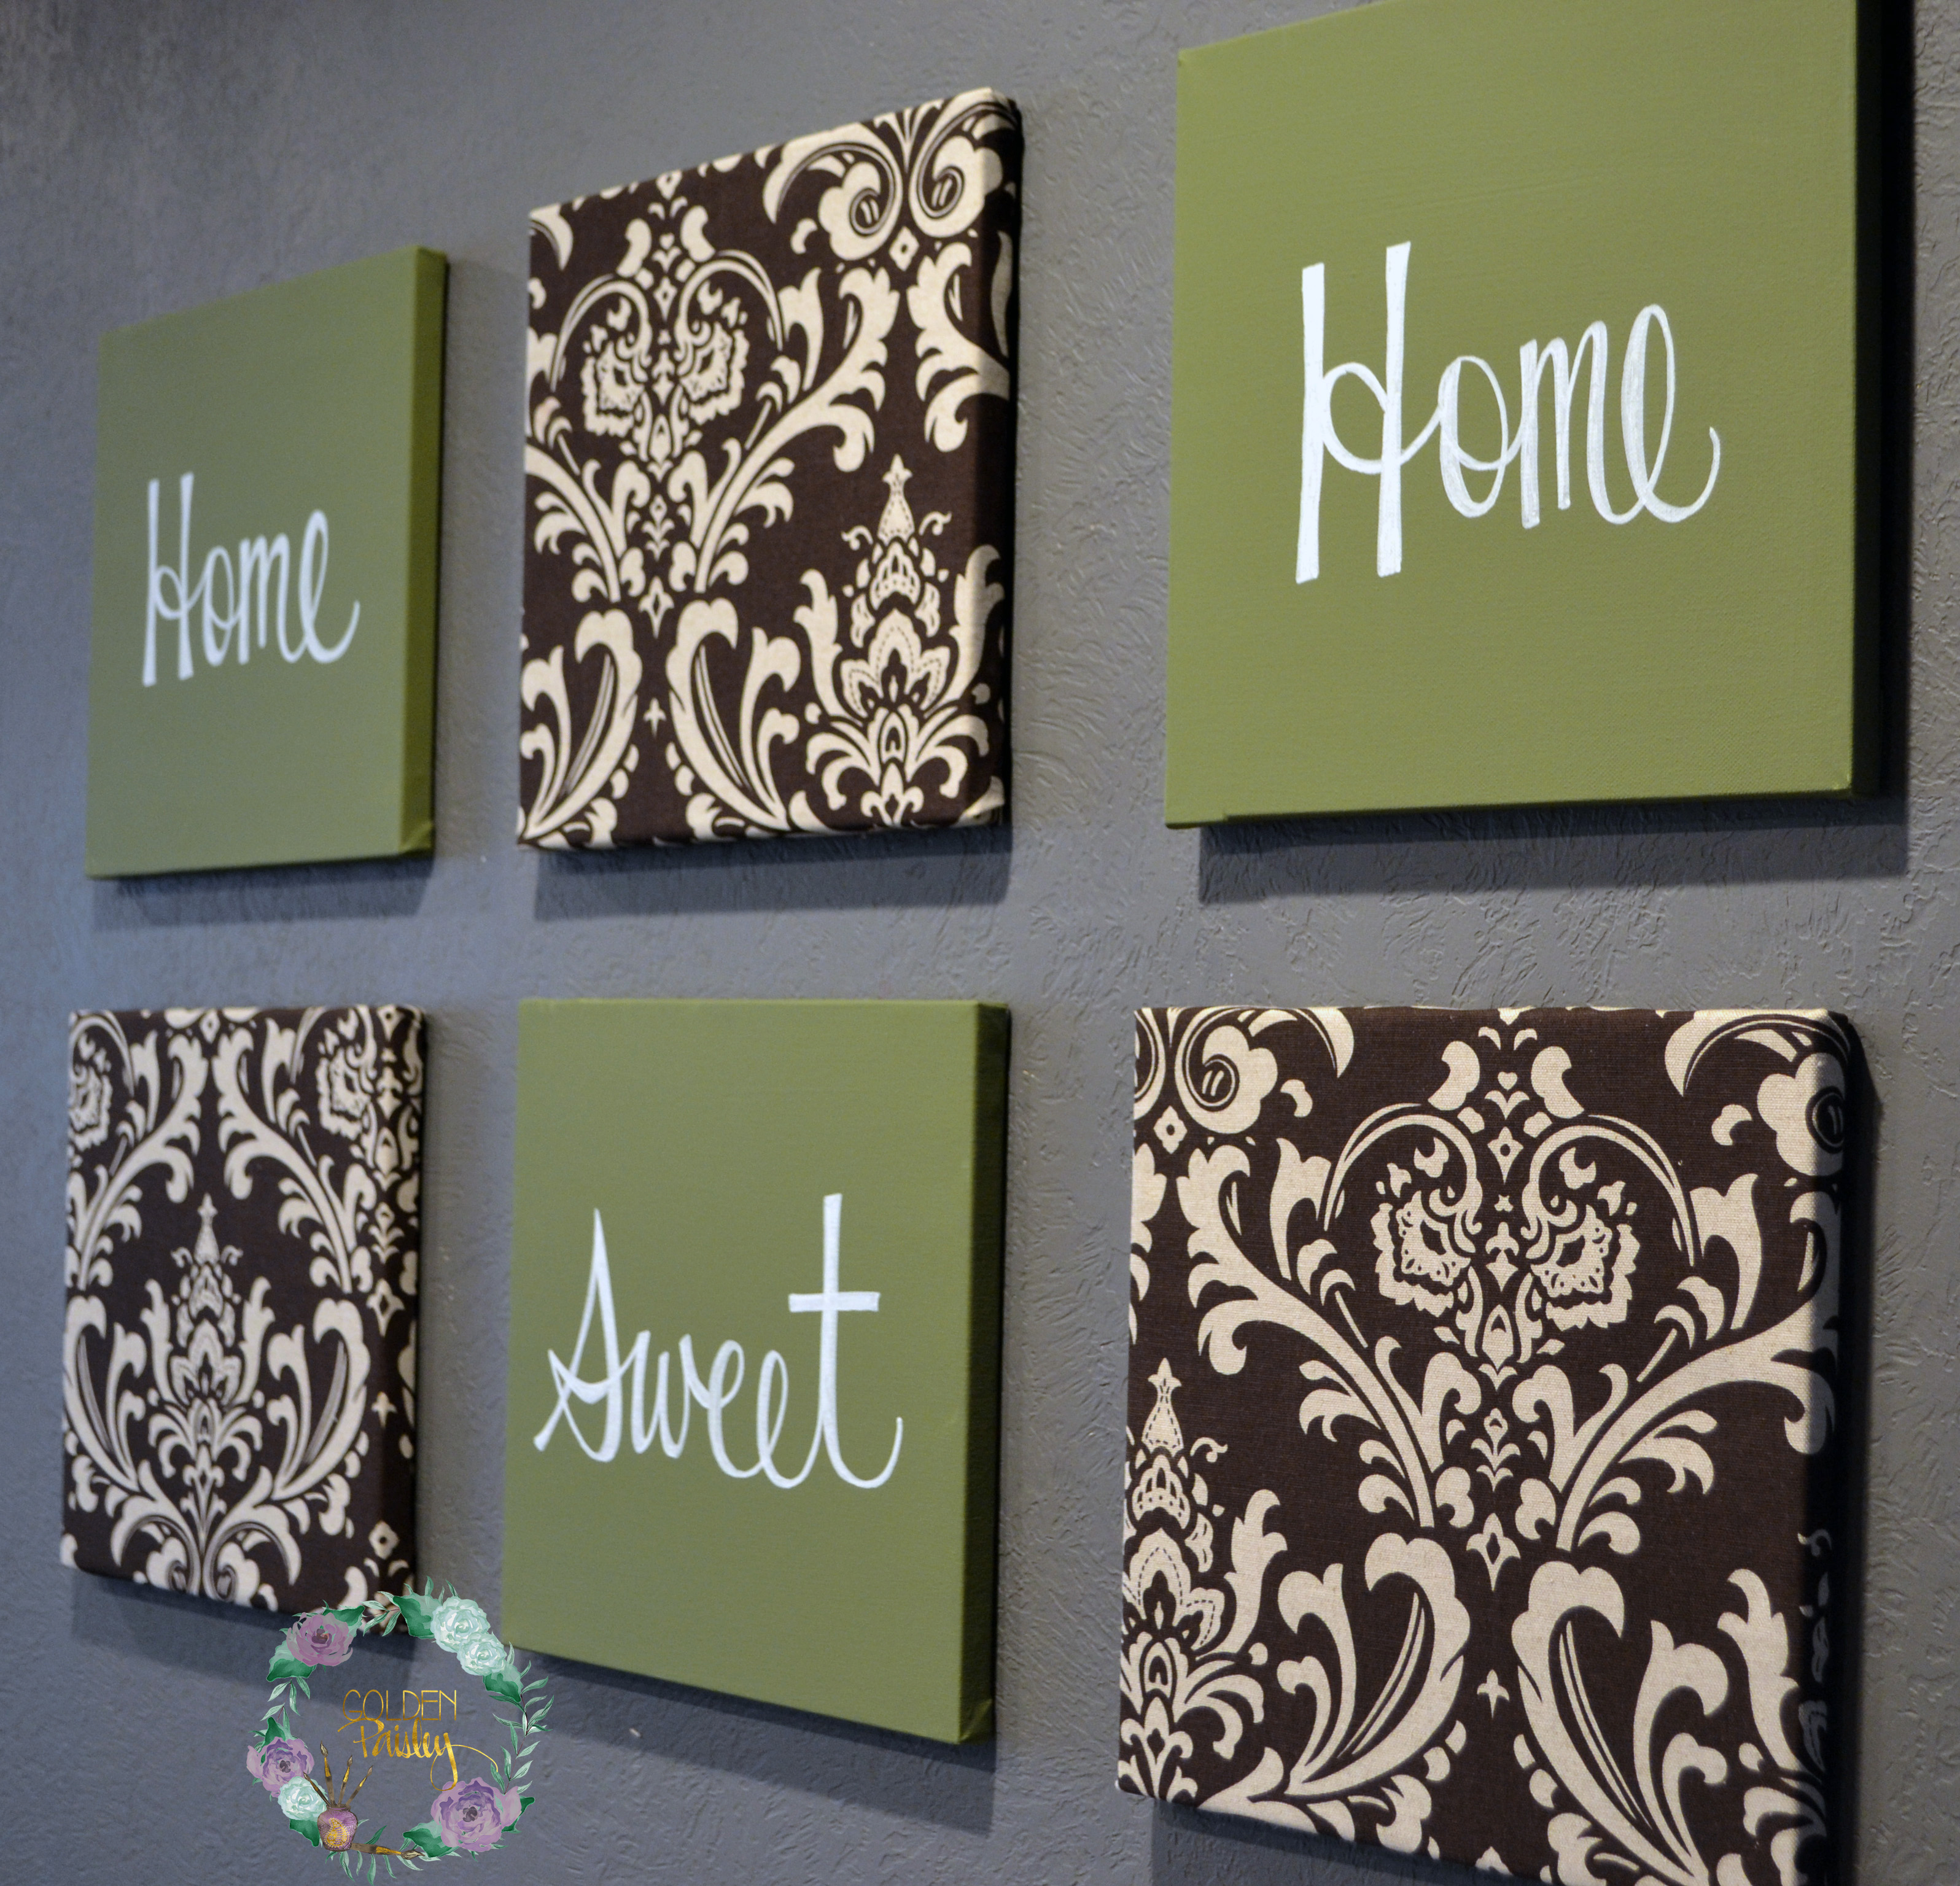 olive green and brown damask home sweet home wall decor set home sweet home wood blocks wood sign home decor fireplace